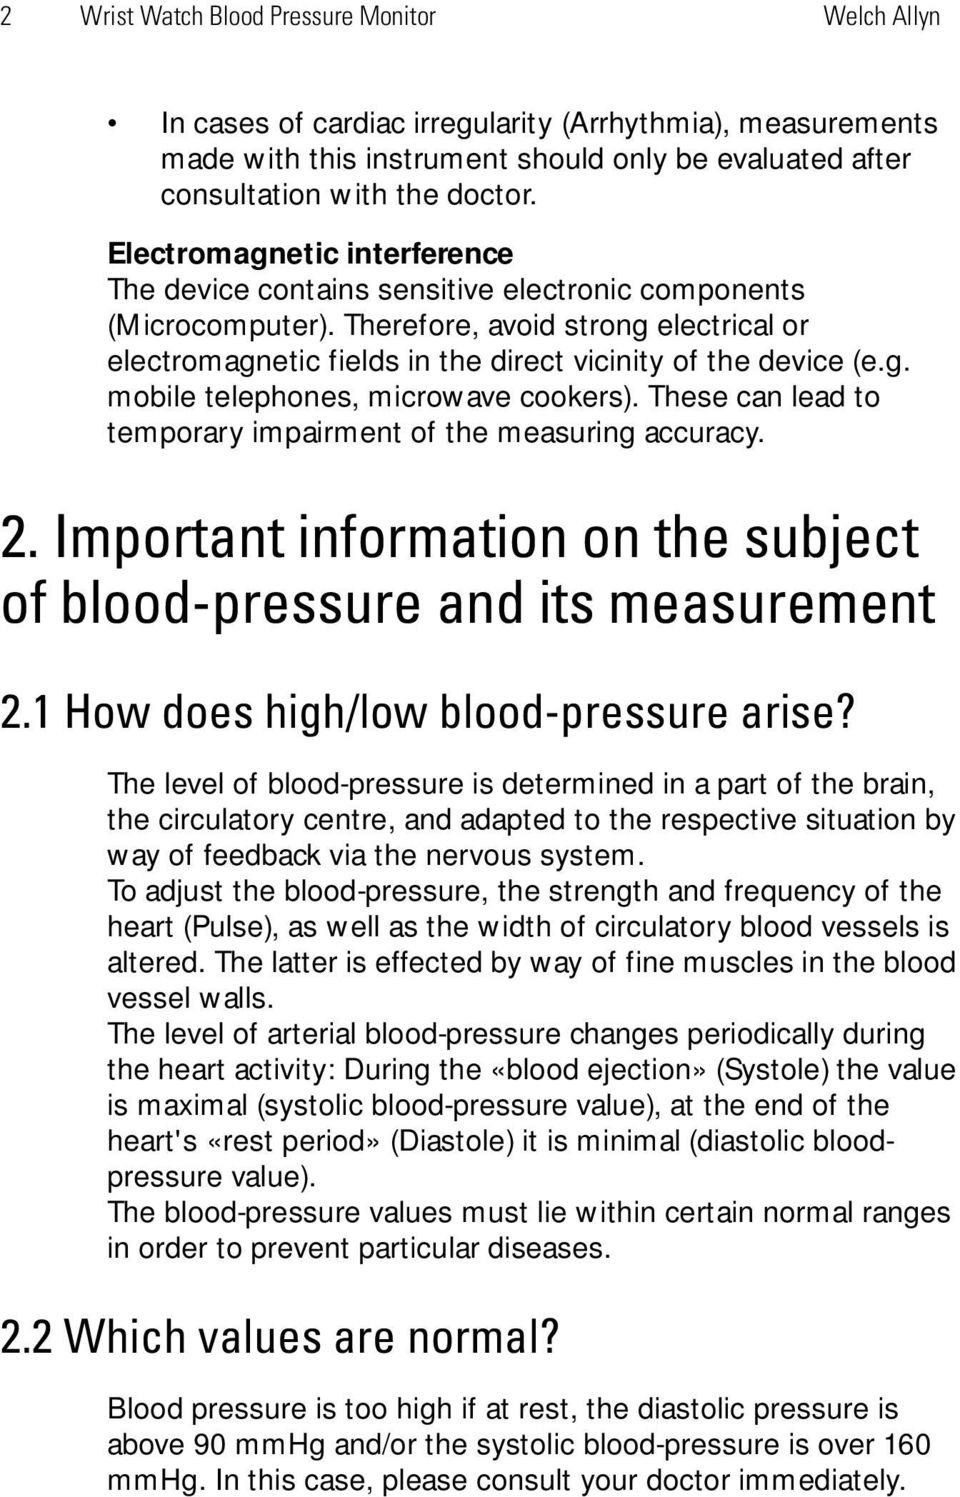 g. mobile telephones, microwave cookers). These can lead to temporary impairment of the measuring accuracy. 2. Important information on the subject of blood-pressure and its measurement 2.